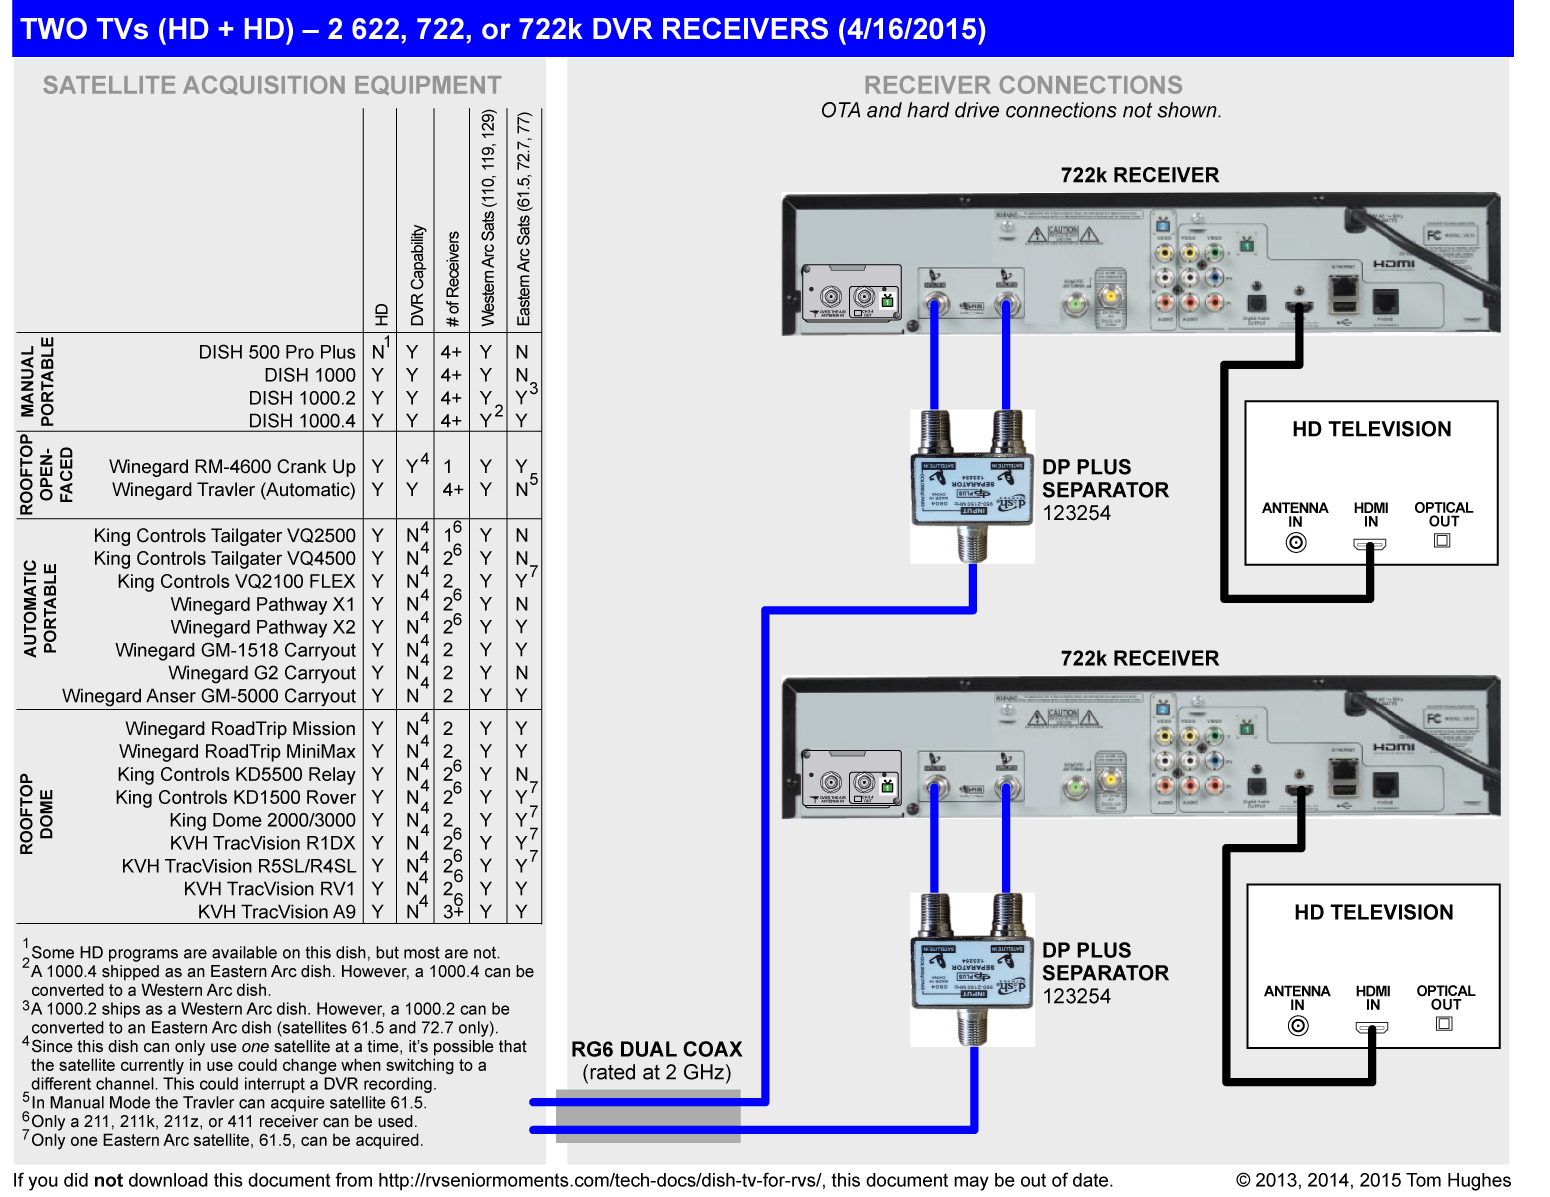 206_dish_twotvs_622_722_722k_hdhd720dpi wiring diagram dish network 722k readingrat net dish network wiring diagrams dual tuner at creativeand.co